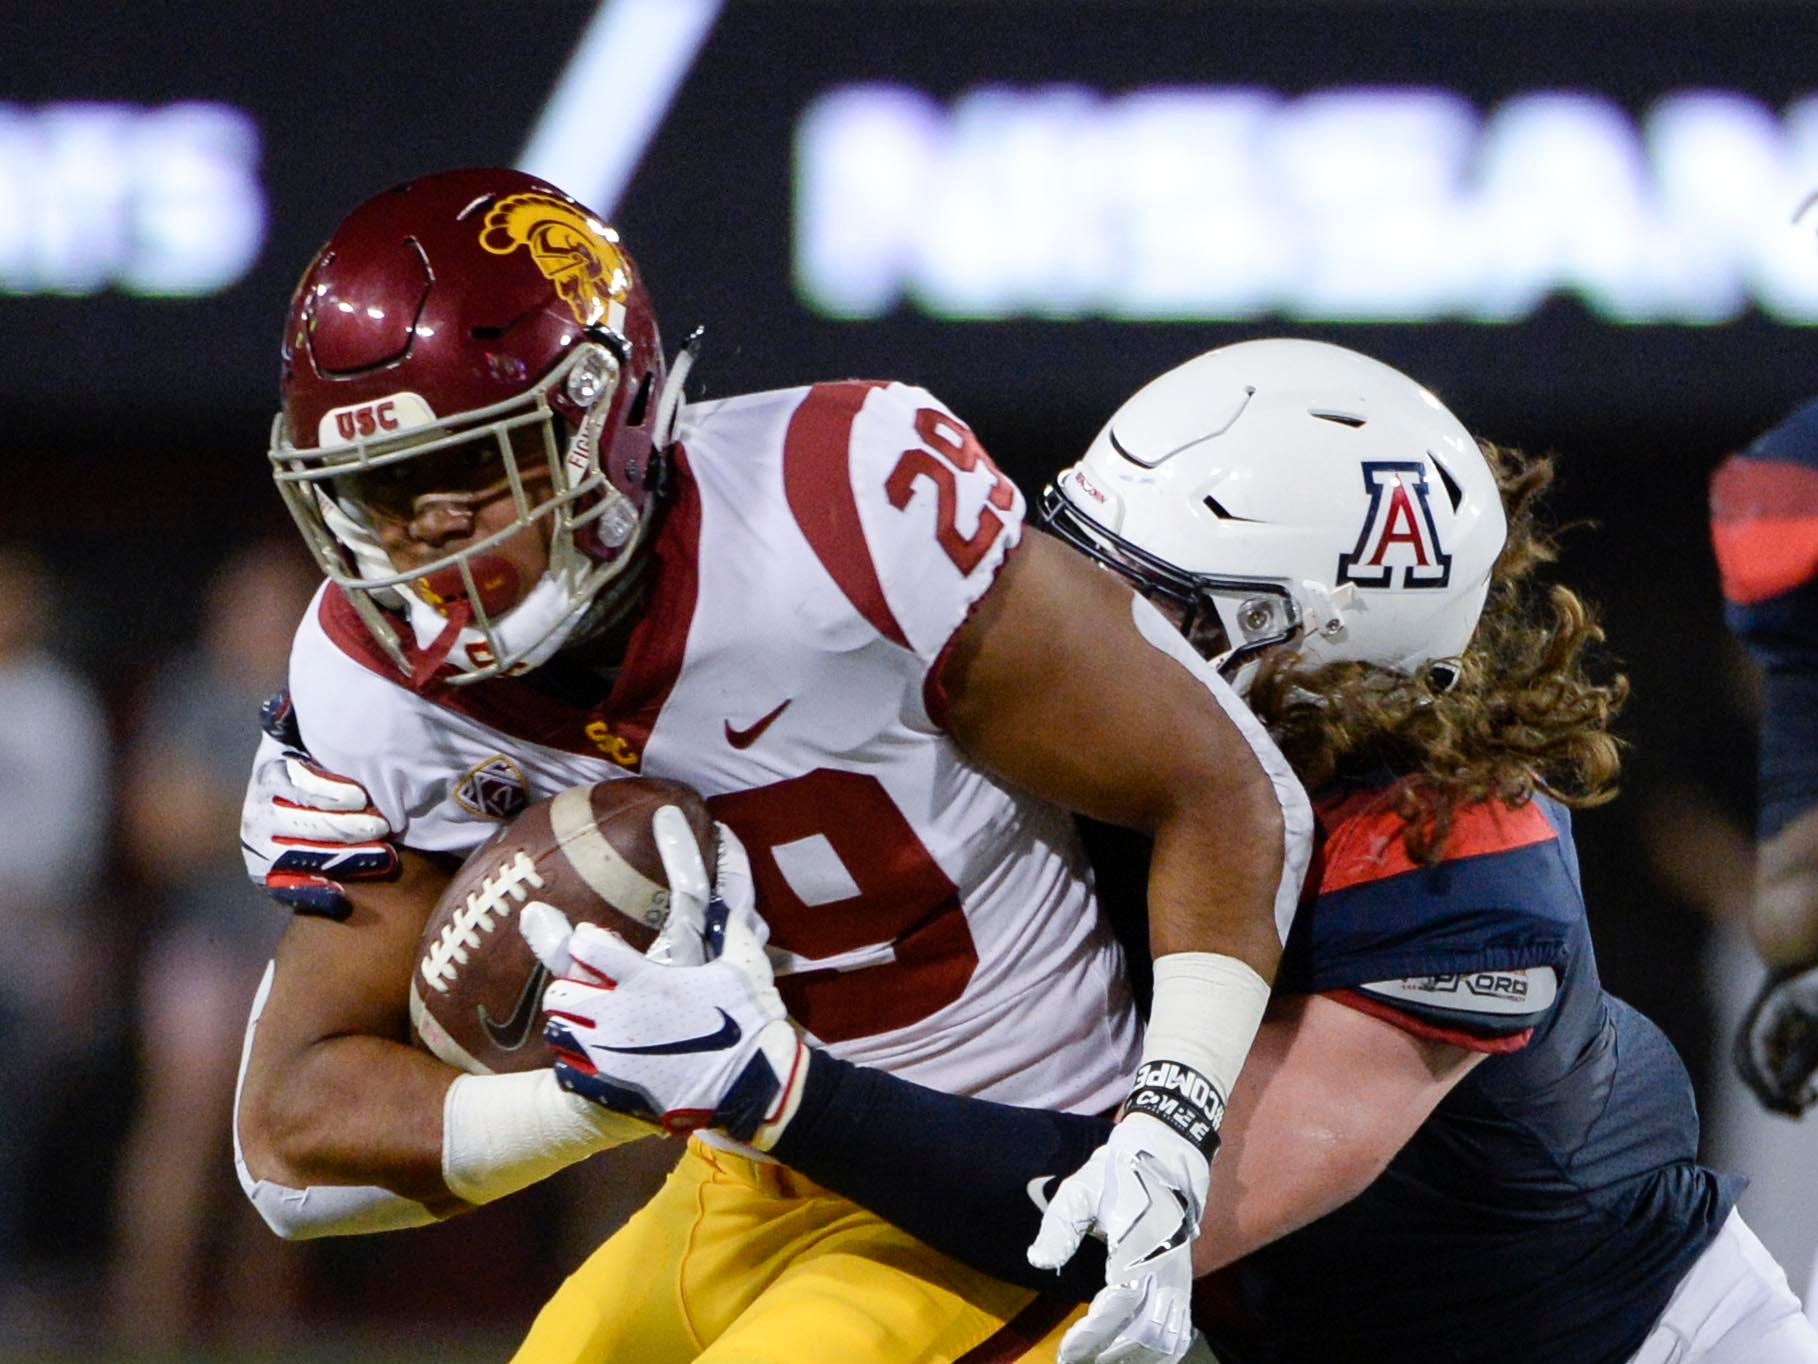 Sep 29, 2018; Tucson, AZ, USA; Southern California Trojans running back Vavae Malepeai (29) runs the ball as he is tackled by Arizona Wildcats linebacker Colin Schooler (7) during the first half at Arizona Stadium. Mandatory Credit: Casey Sapio-USA TODAY Sports